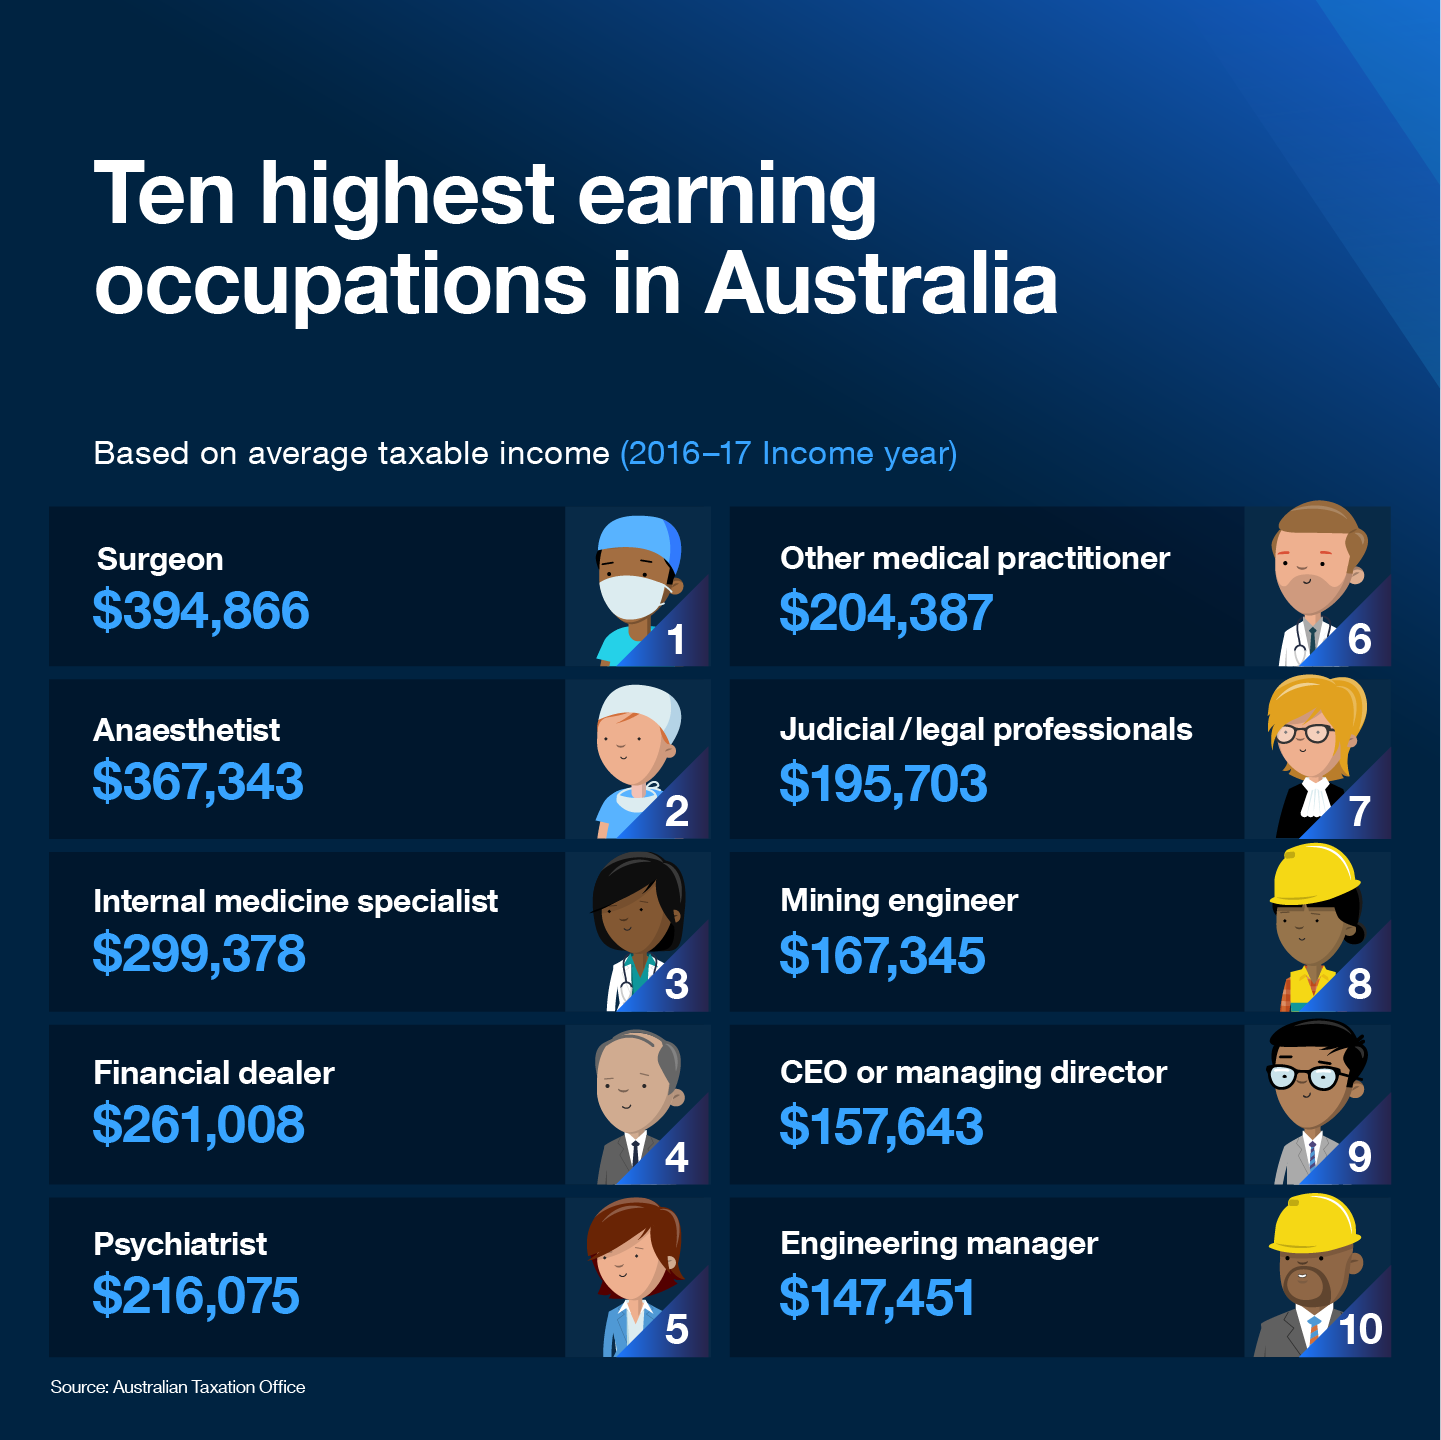 Ten highest earning occupations in Australia  Based on average taxable income (2016-17 Income year)  1. Surgeon, $394,866 2. Anaesthetist, $367,343 3. Internal medicine specialist, $299,378 4. Financial dealer, $261,008 5. Psychiatrist, $216,075 6. Other medical practitioner, $204,387 7. Judicial/ legal professionals, $195,703 8. Mining engineer, $167,345 9. CEO or managing director, $157,643 10. Engineering manager, $147,451